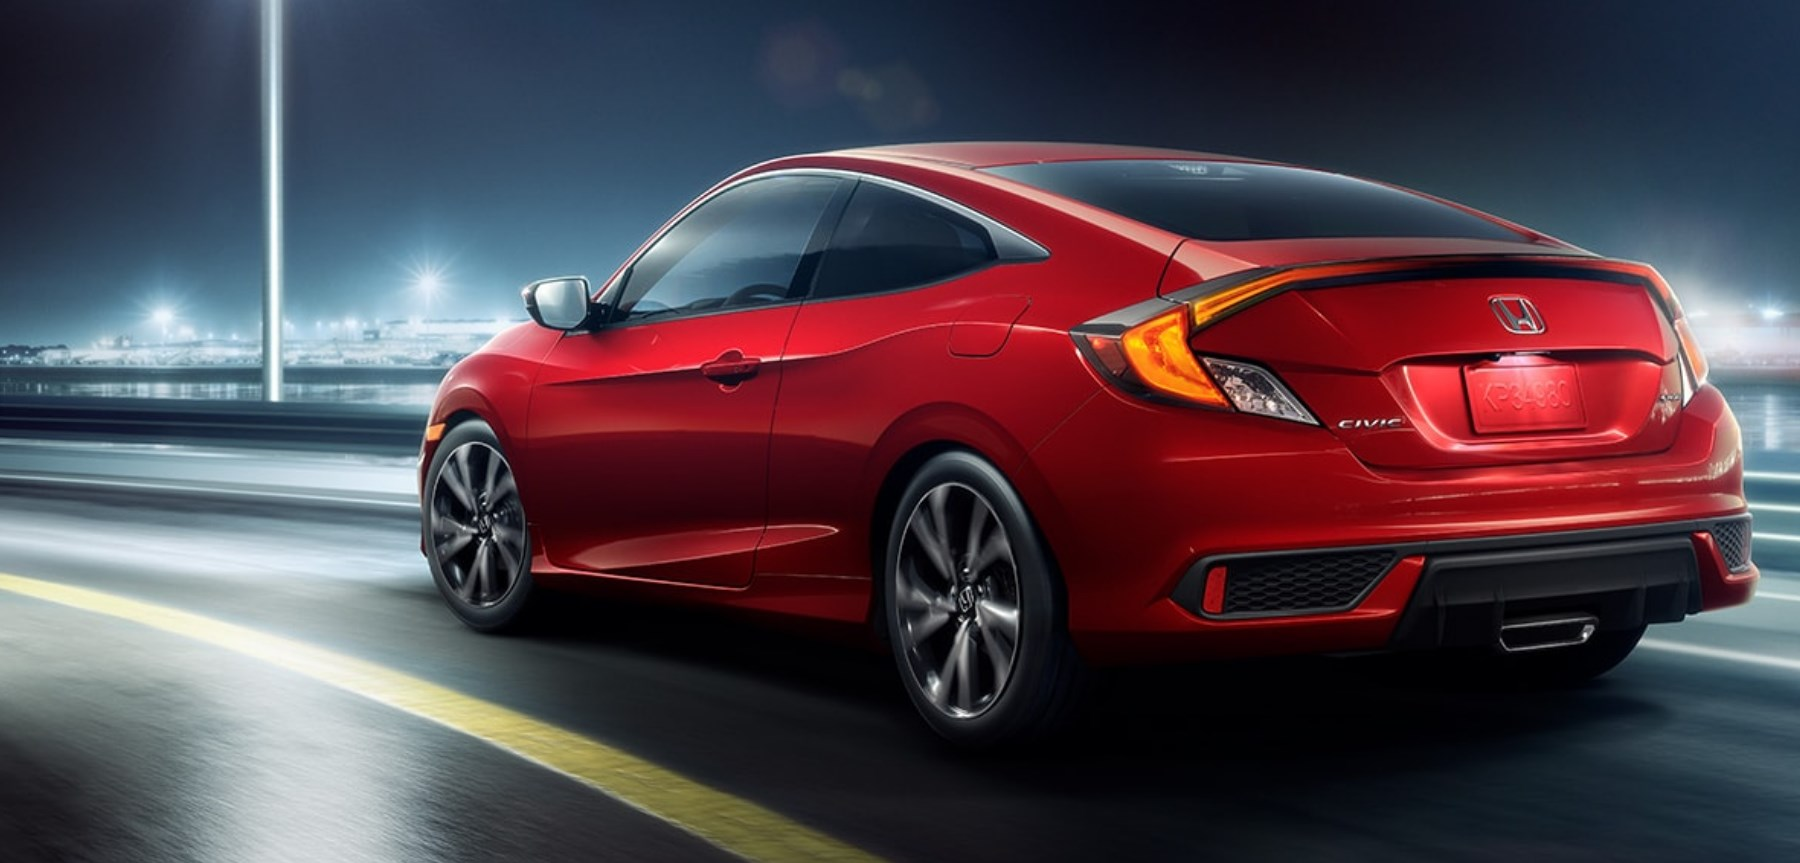 2020 Honda Civic Coupe Rear Red Exterior Picture